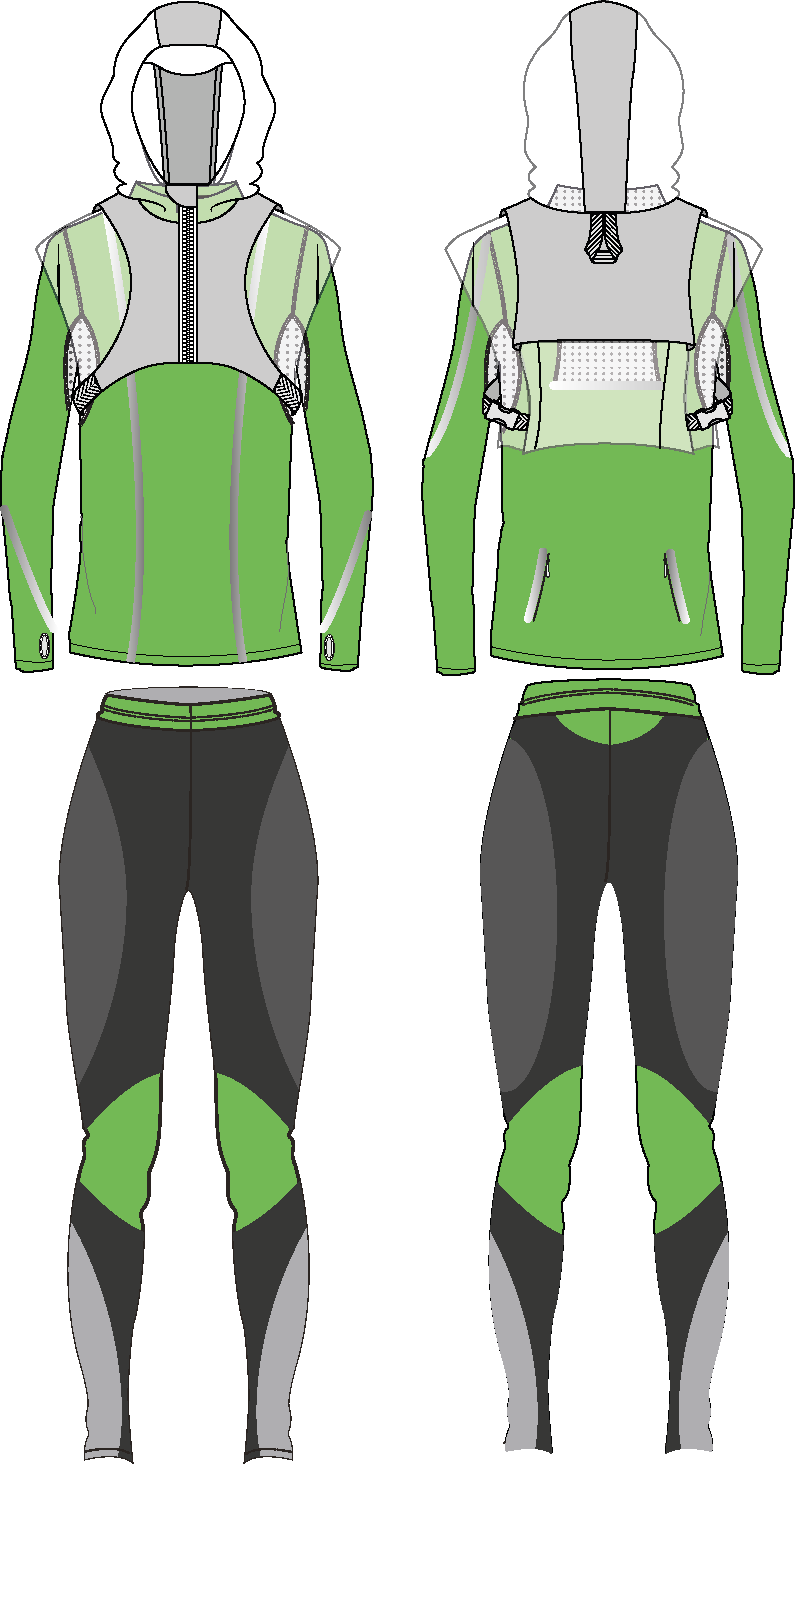 Reflective Runner.png